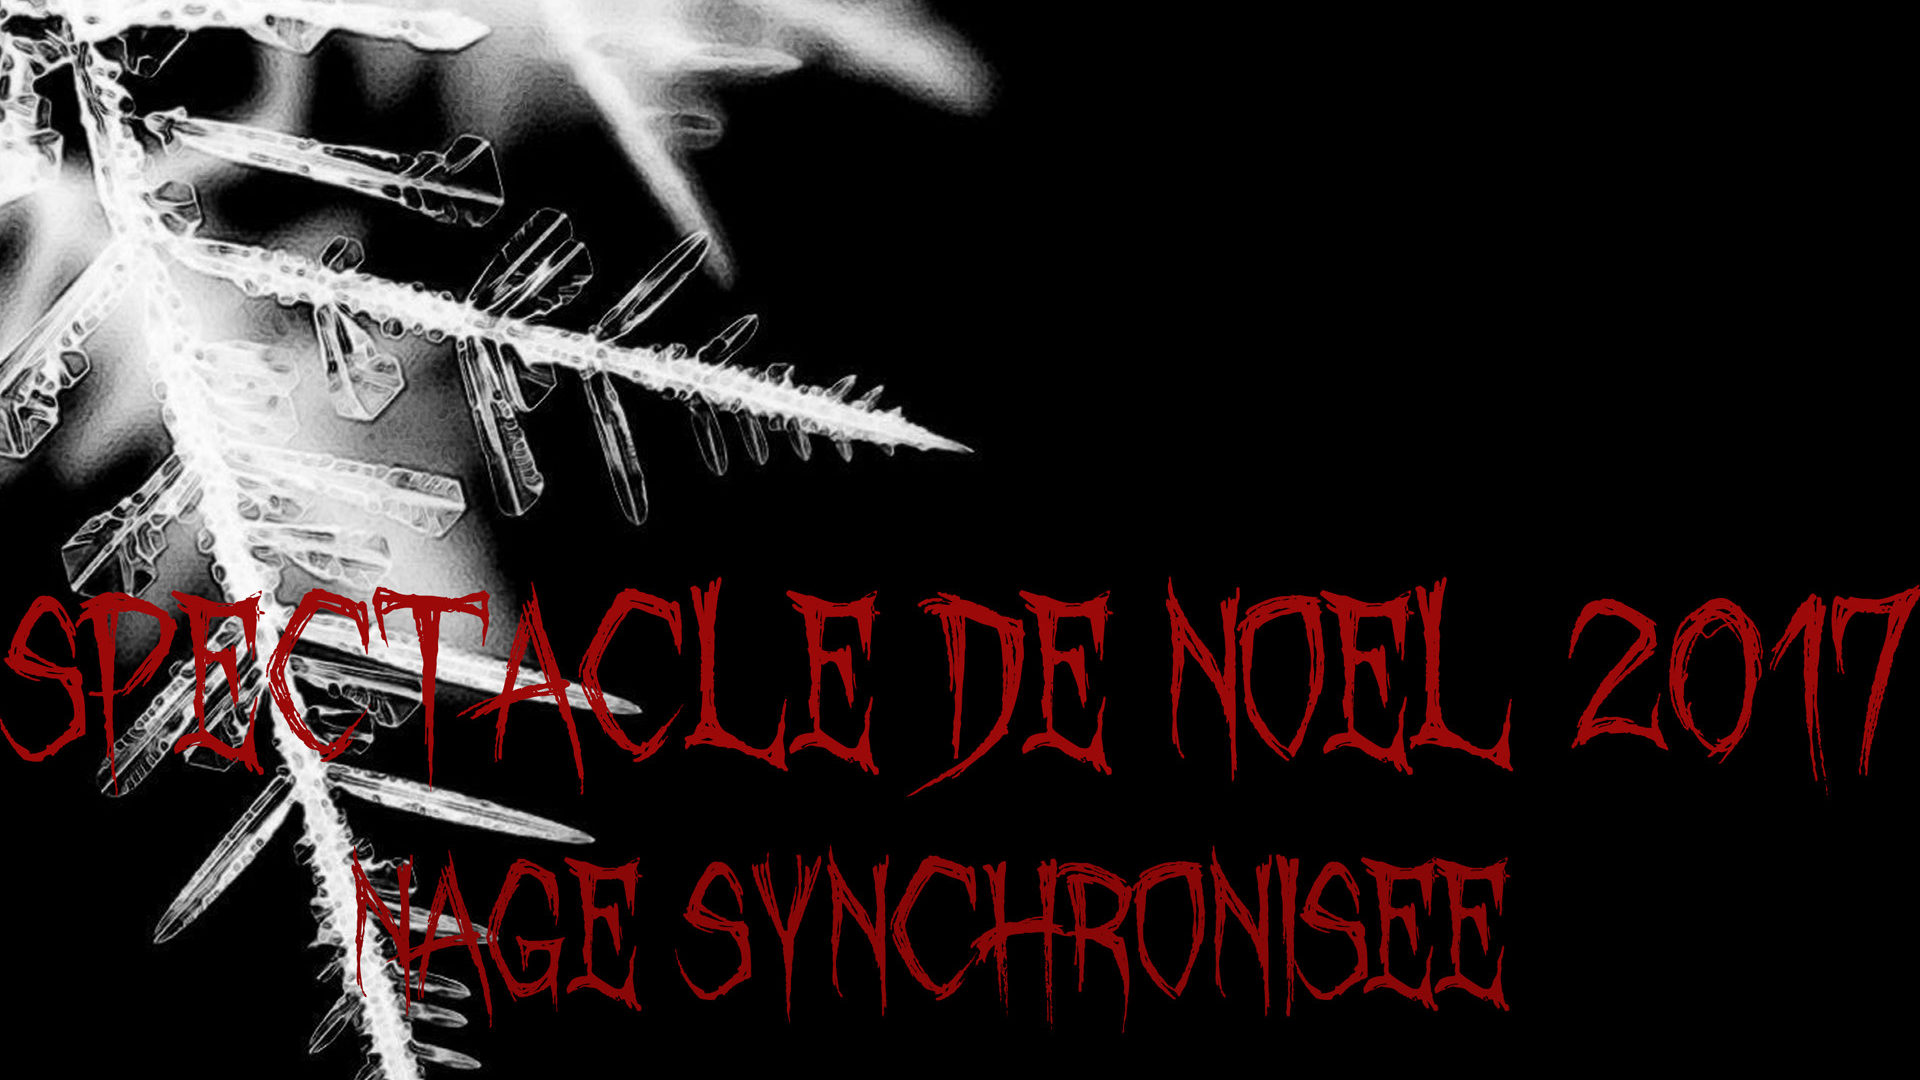 Spectacle de Noel Nage Synchro le 16 DEC